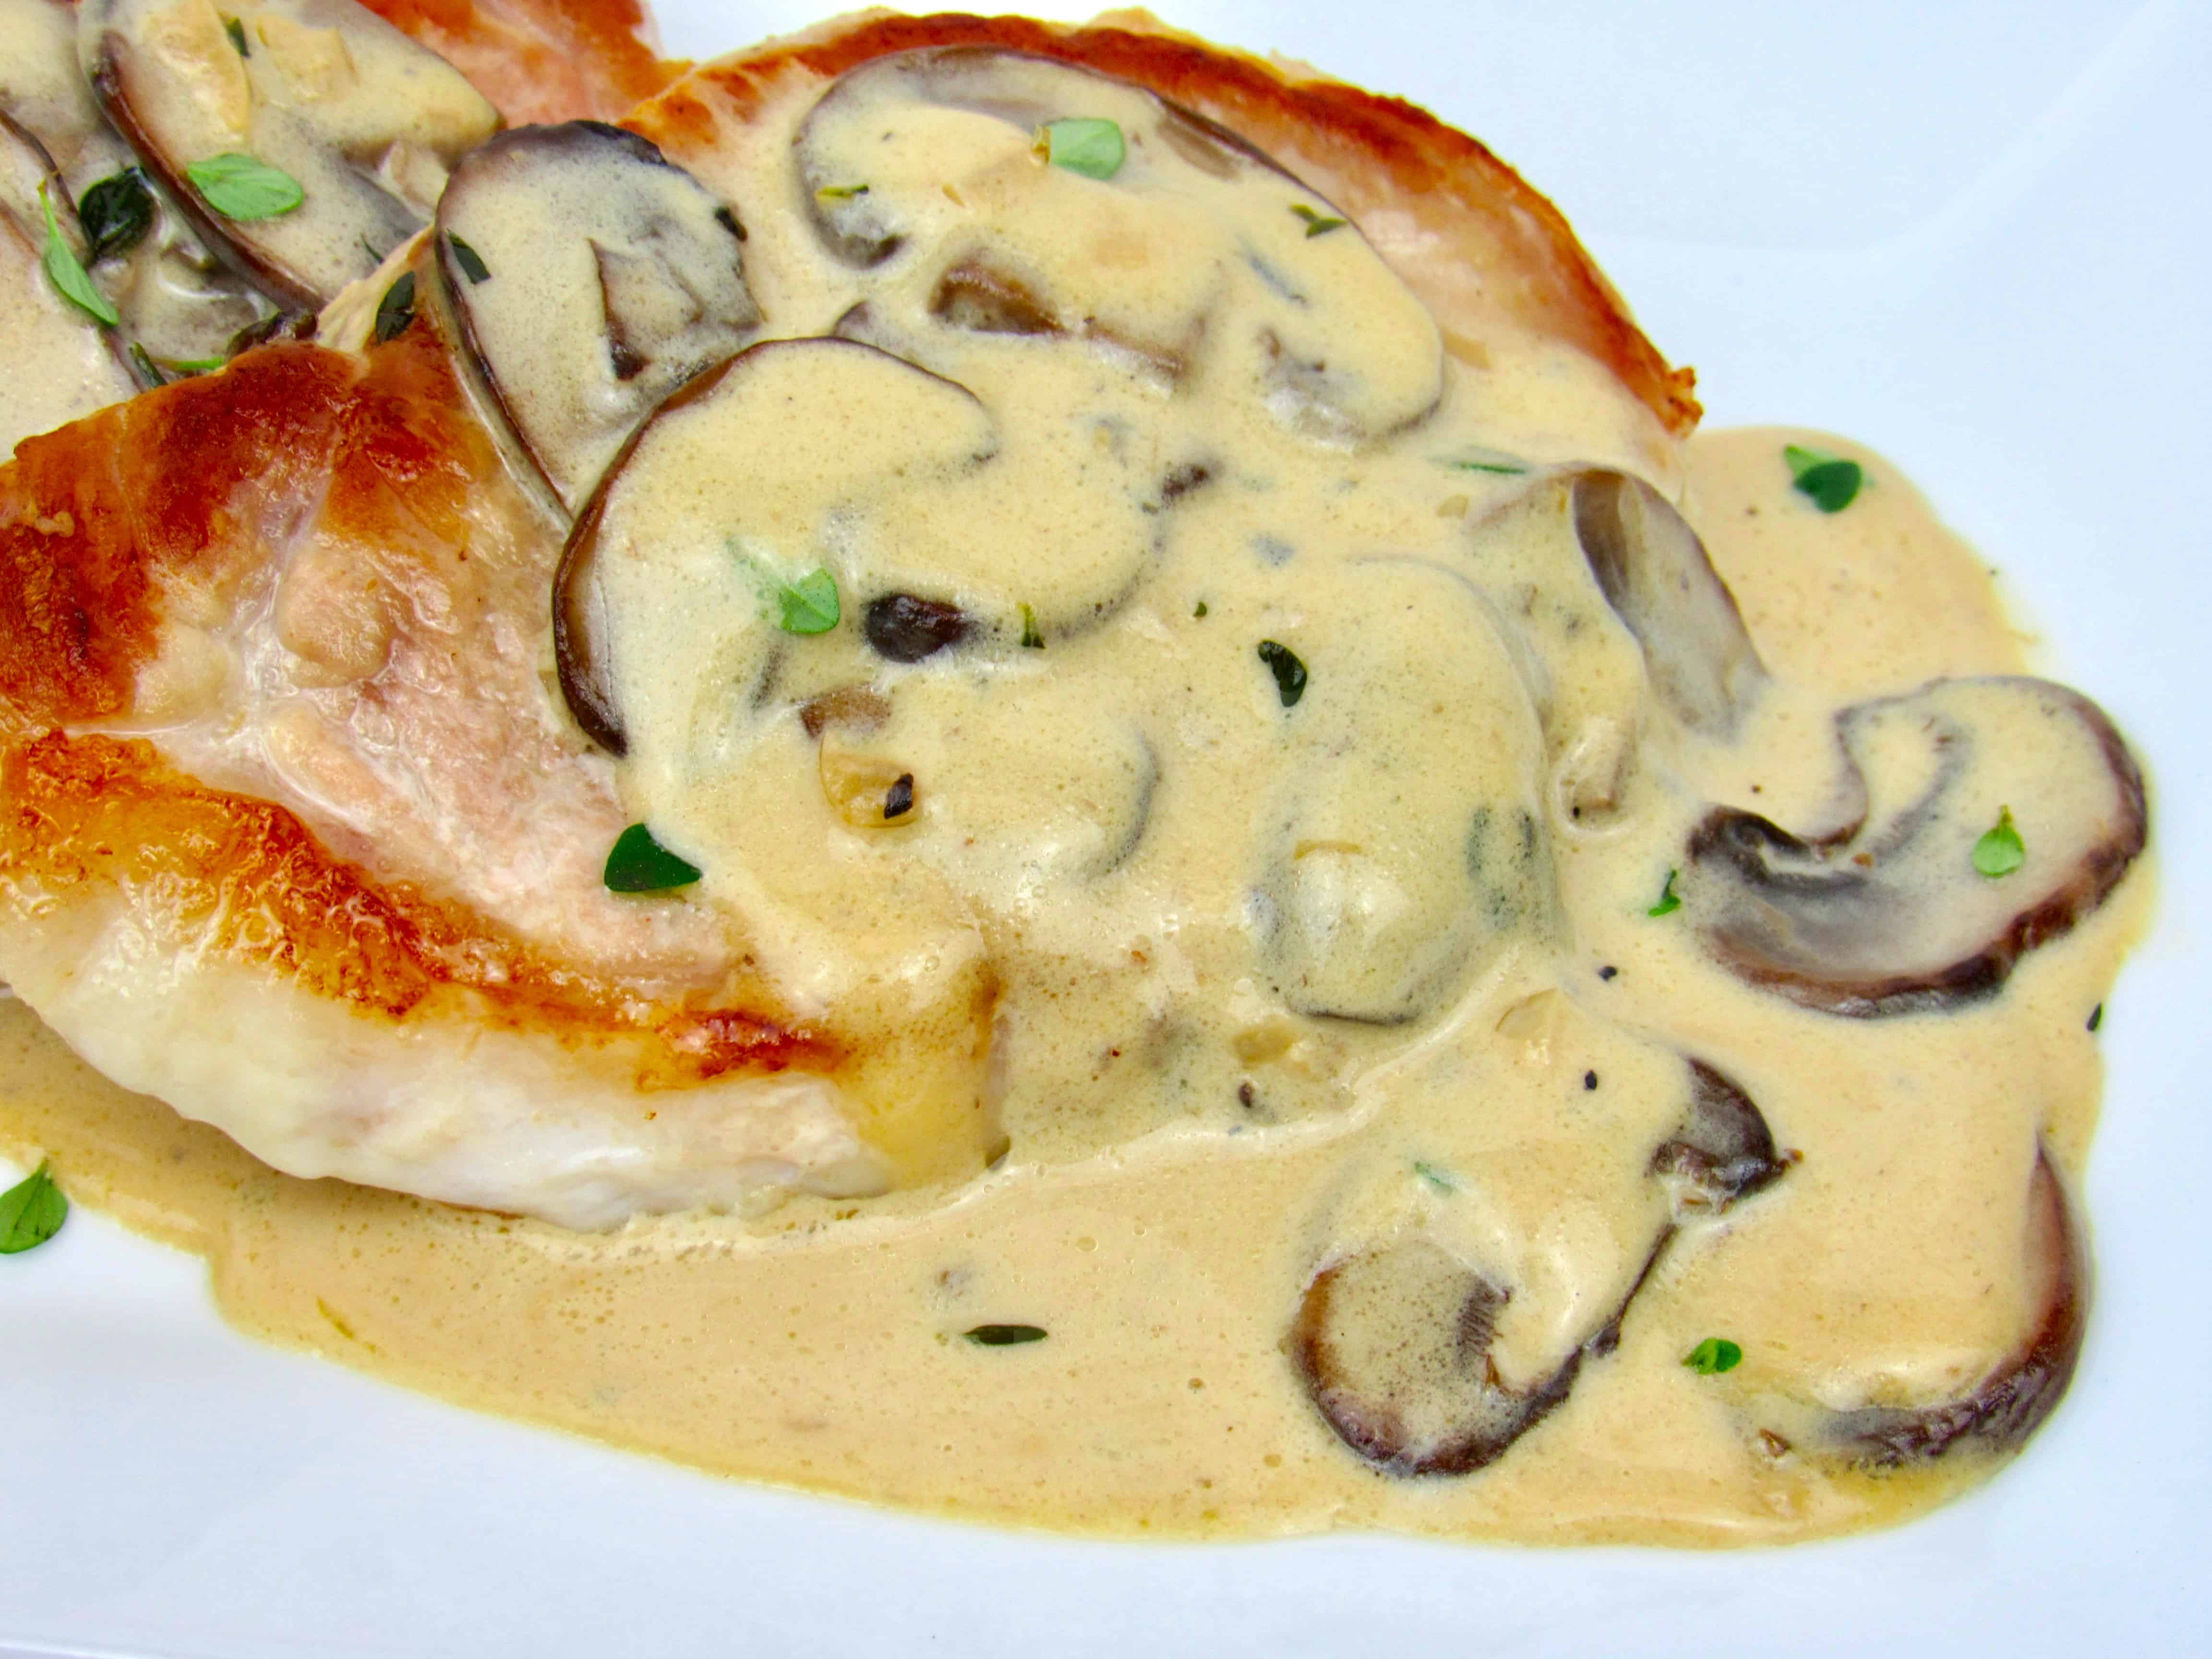 closeup of pork chop with mushroom gravy on top on white plate